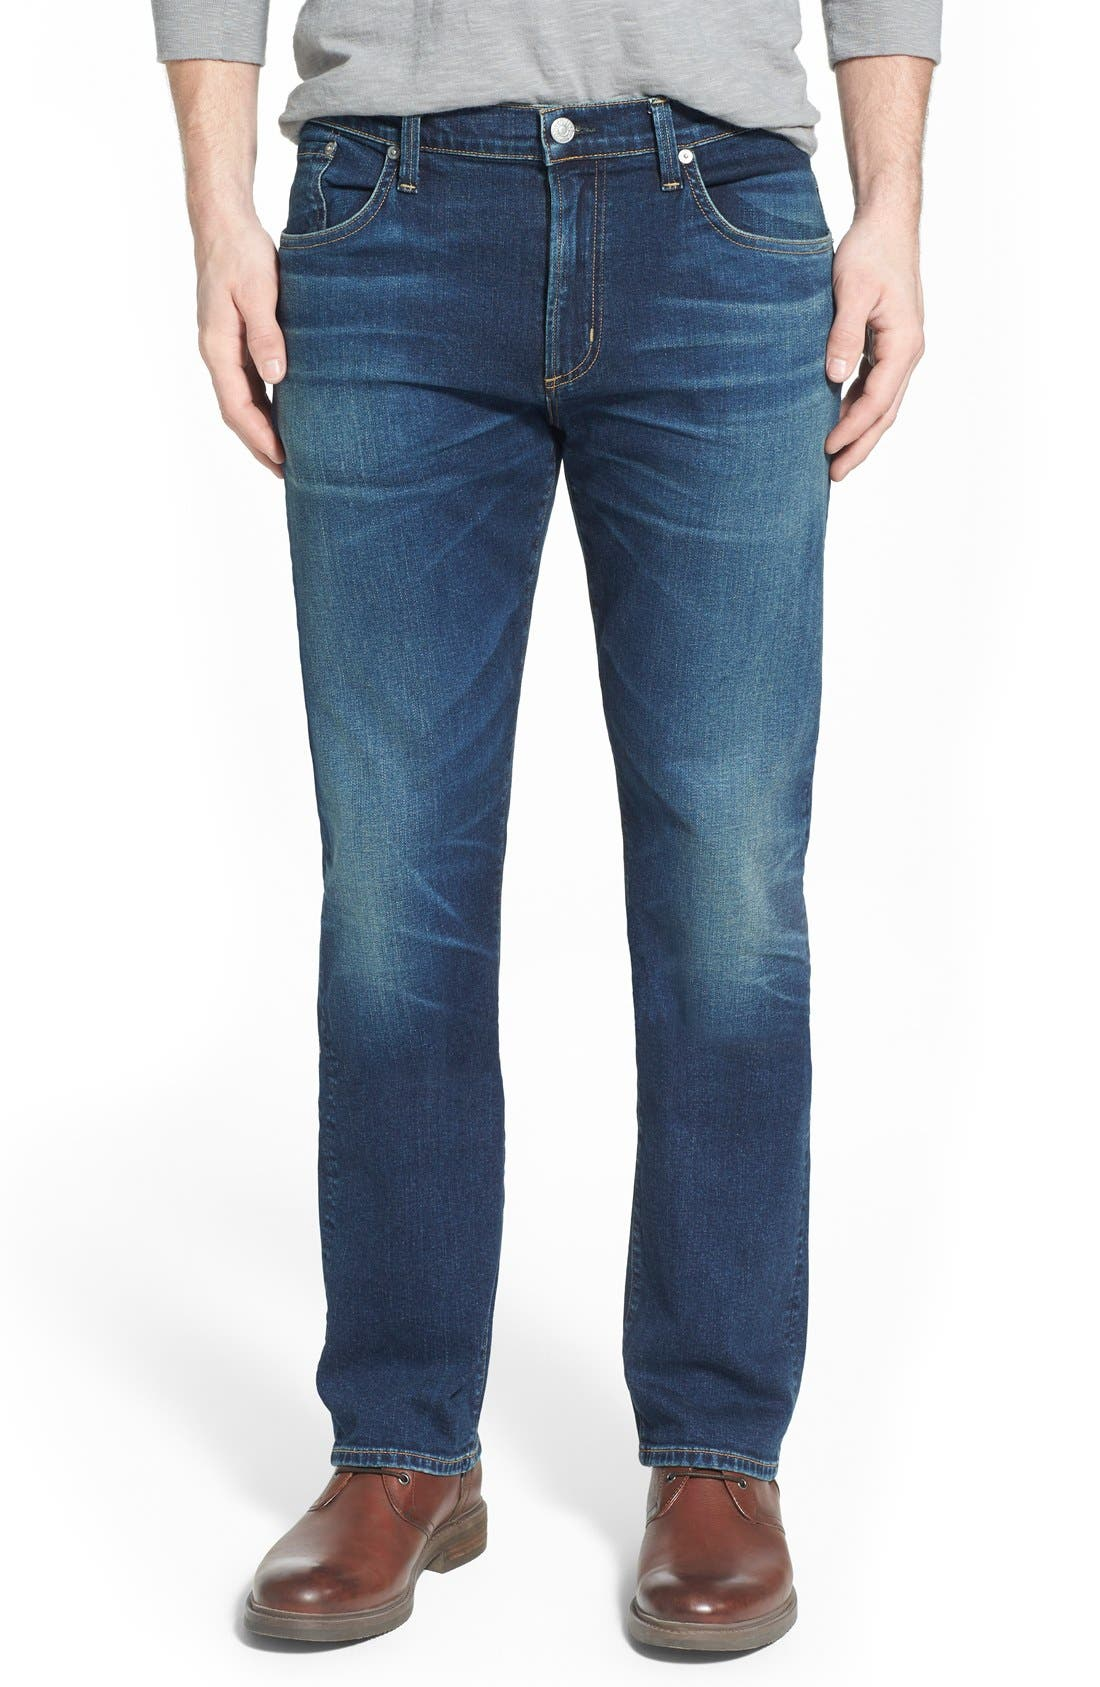 Alternate Image 1 Selected - Citizens of Humanity 'Core' Slim Straight Leg Jeans (Brigade)